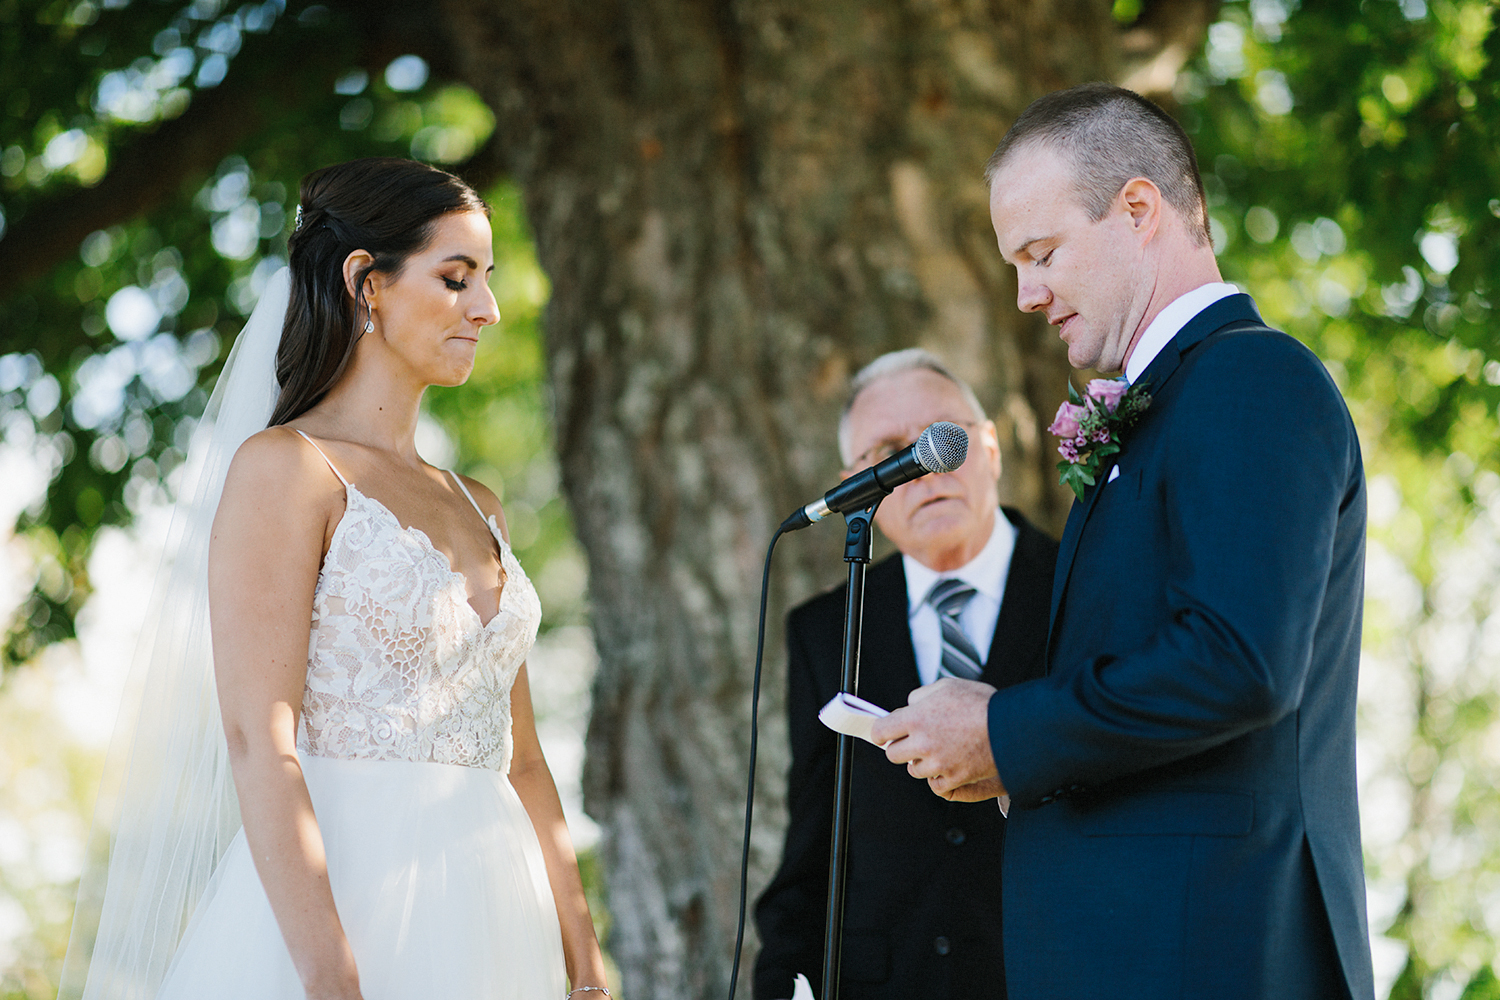 23-toronto-wedding-photographers-hidden-valley-resort-ryanne-hollies-photography-documentary-photojournalistic-fine-art-wedding-photography-lakeside-ceremony-cottage-country-bride-and-groom-vows-groomsman-crying.jpg